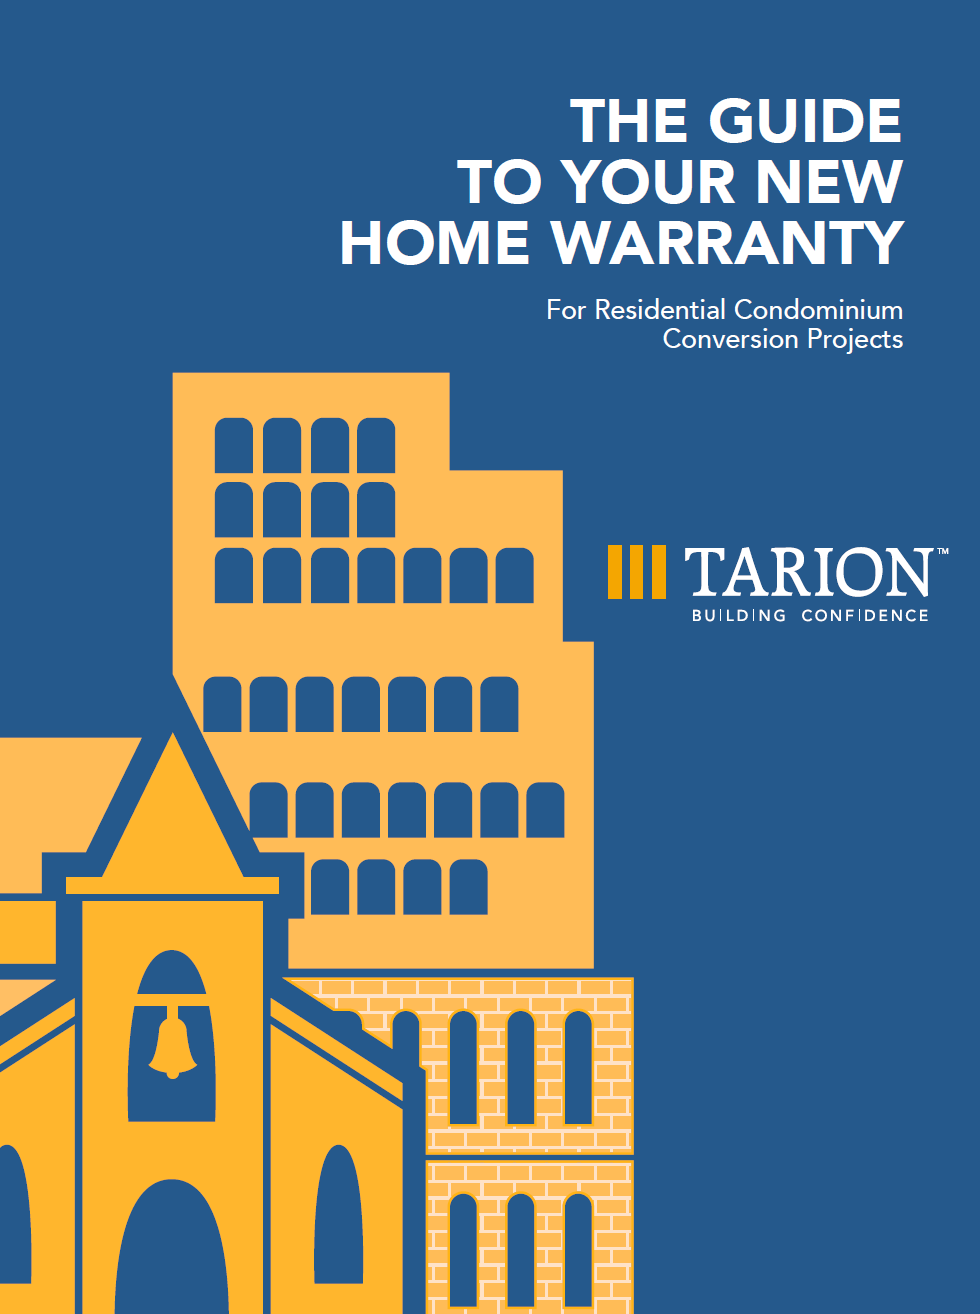 Cover of the Guide to Your New Home Warranty for Residential Condominium Conversion Projects